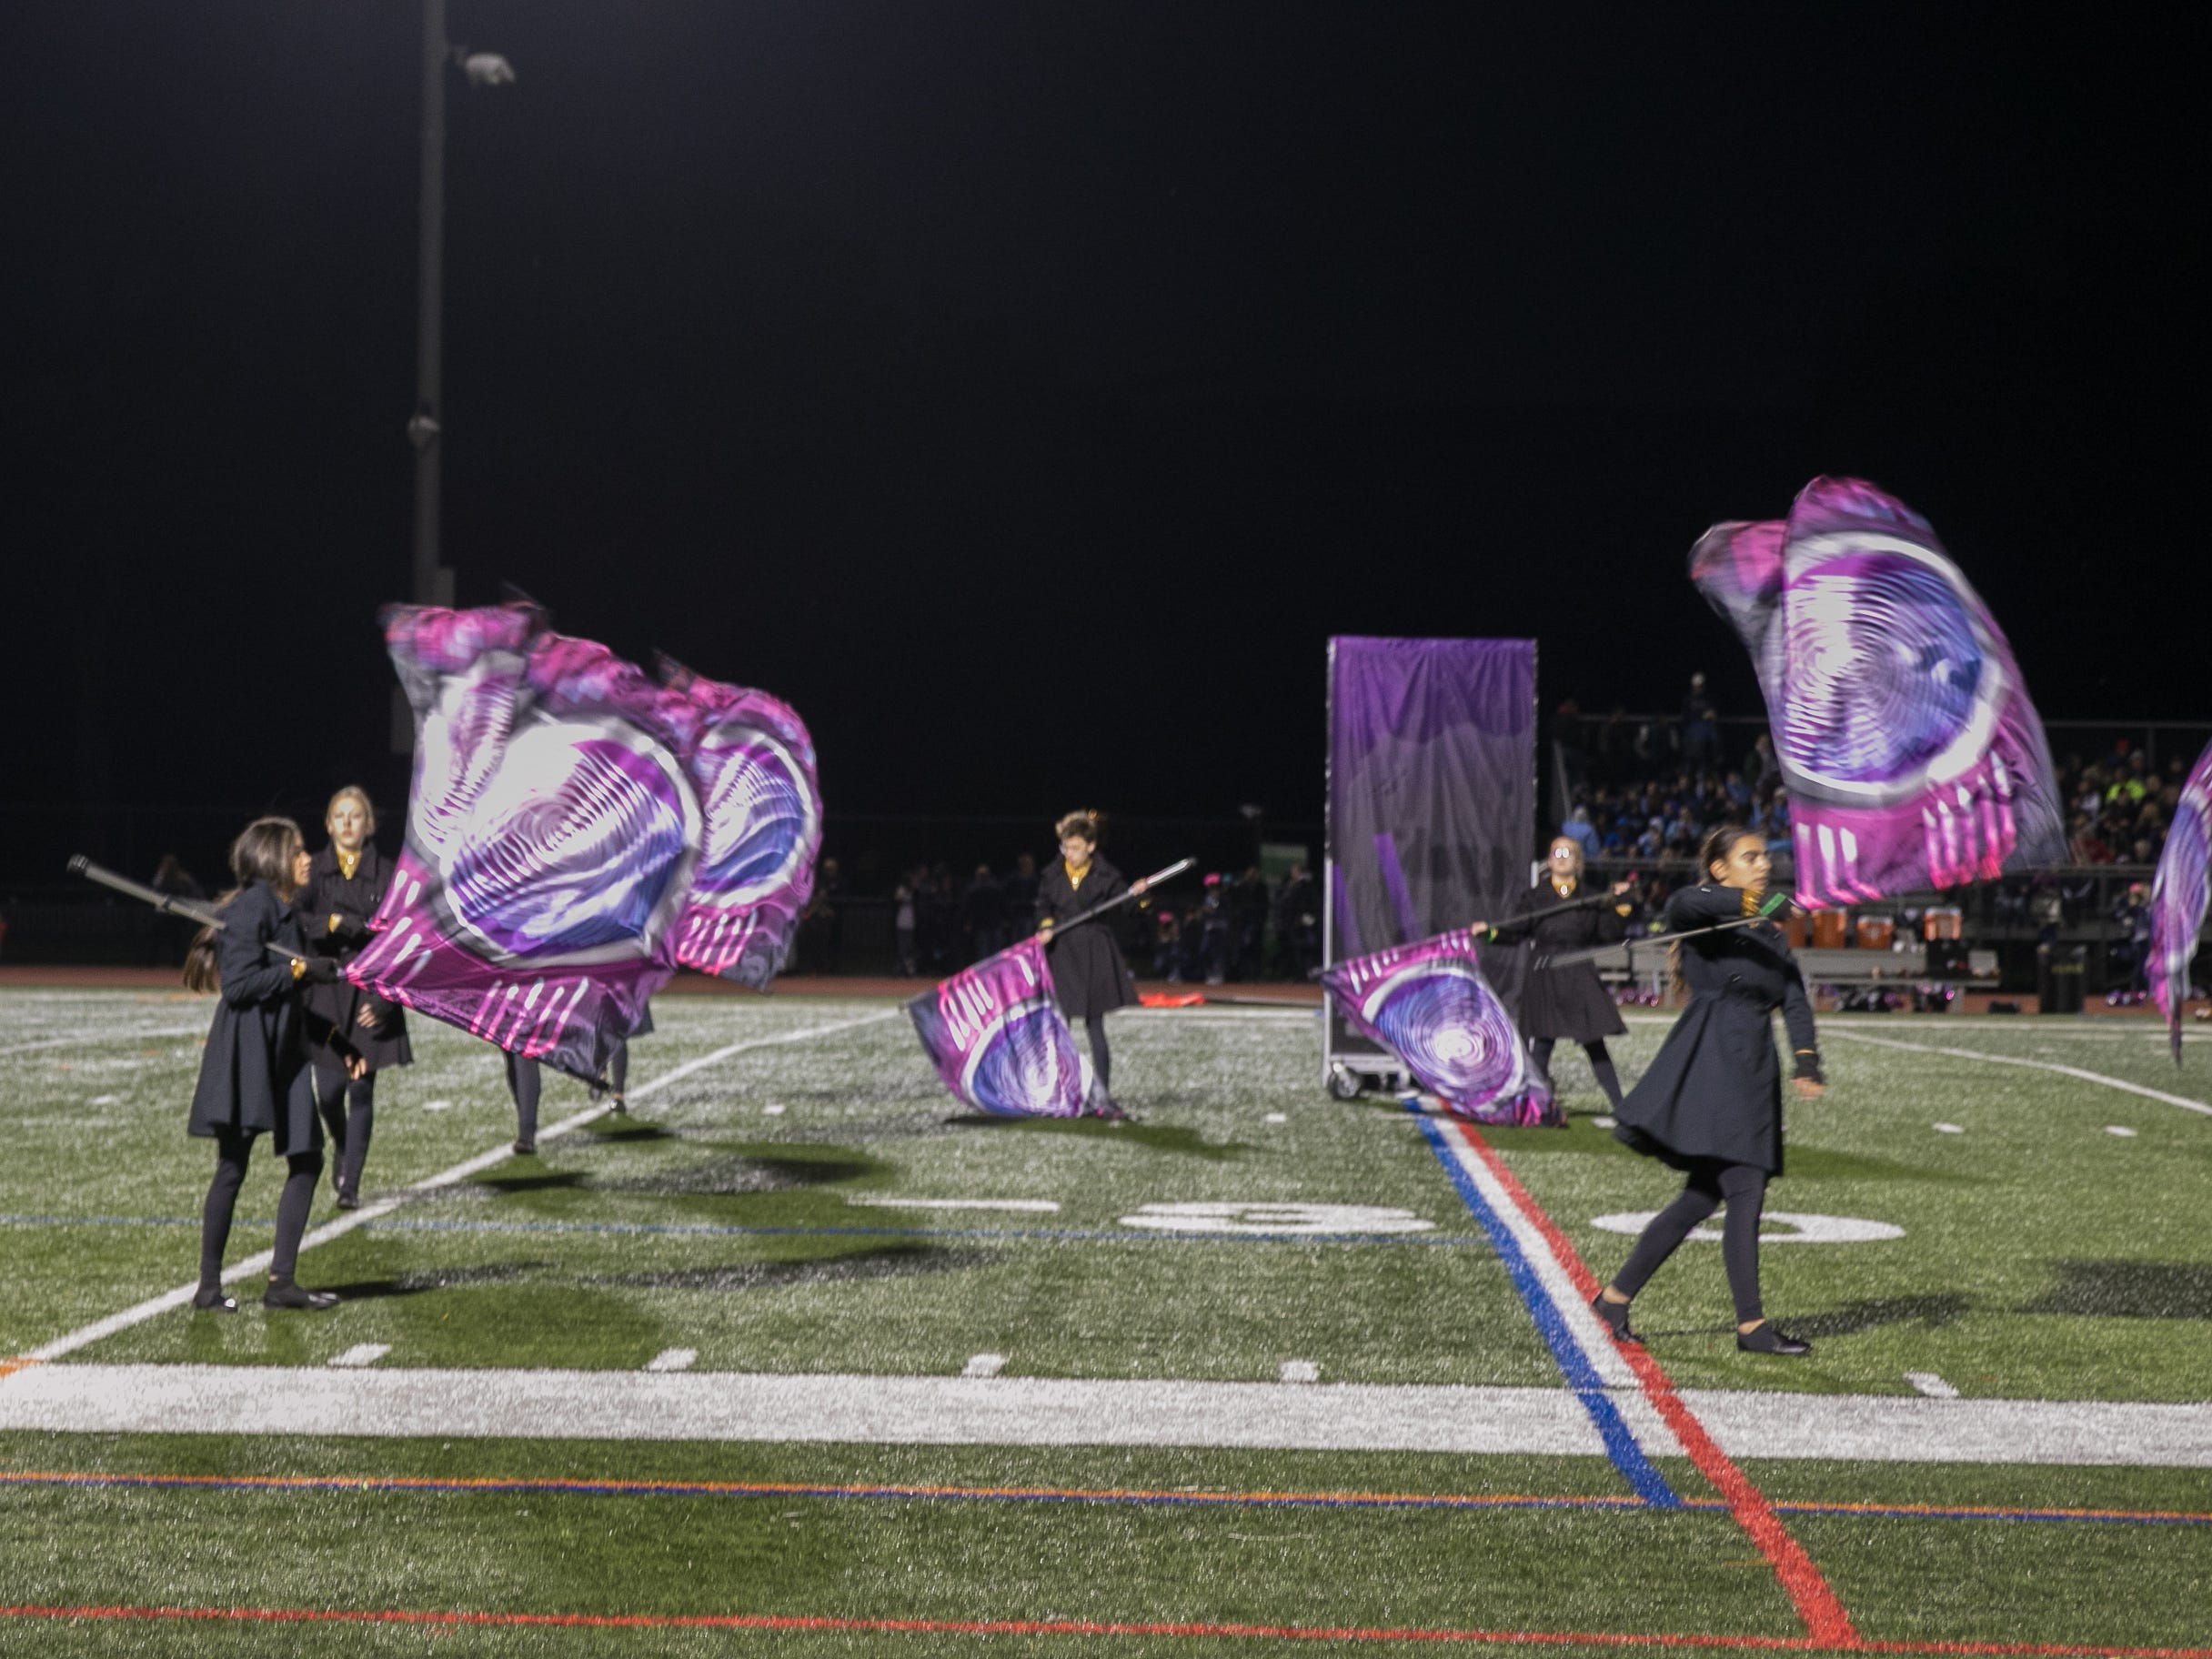 Fans at the RiverDell verses Paramus High School Football game held at RiverDell High School. 10/19/2018